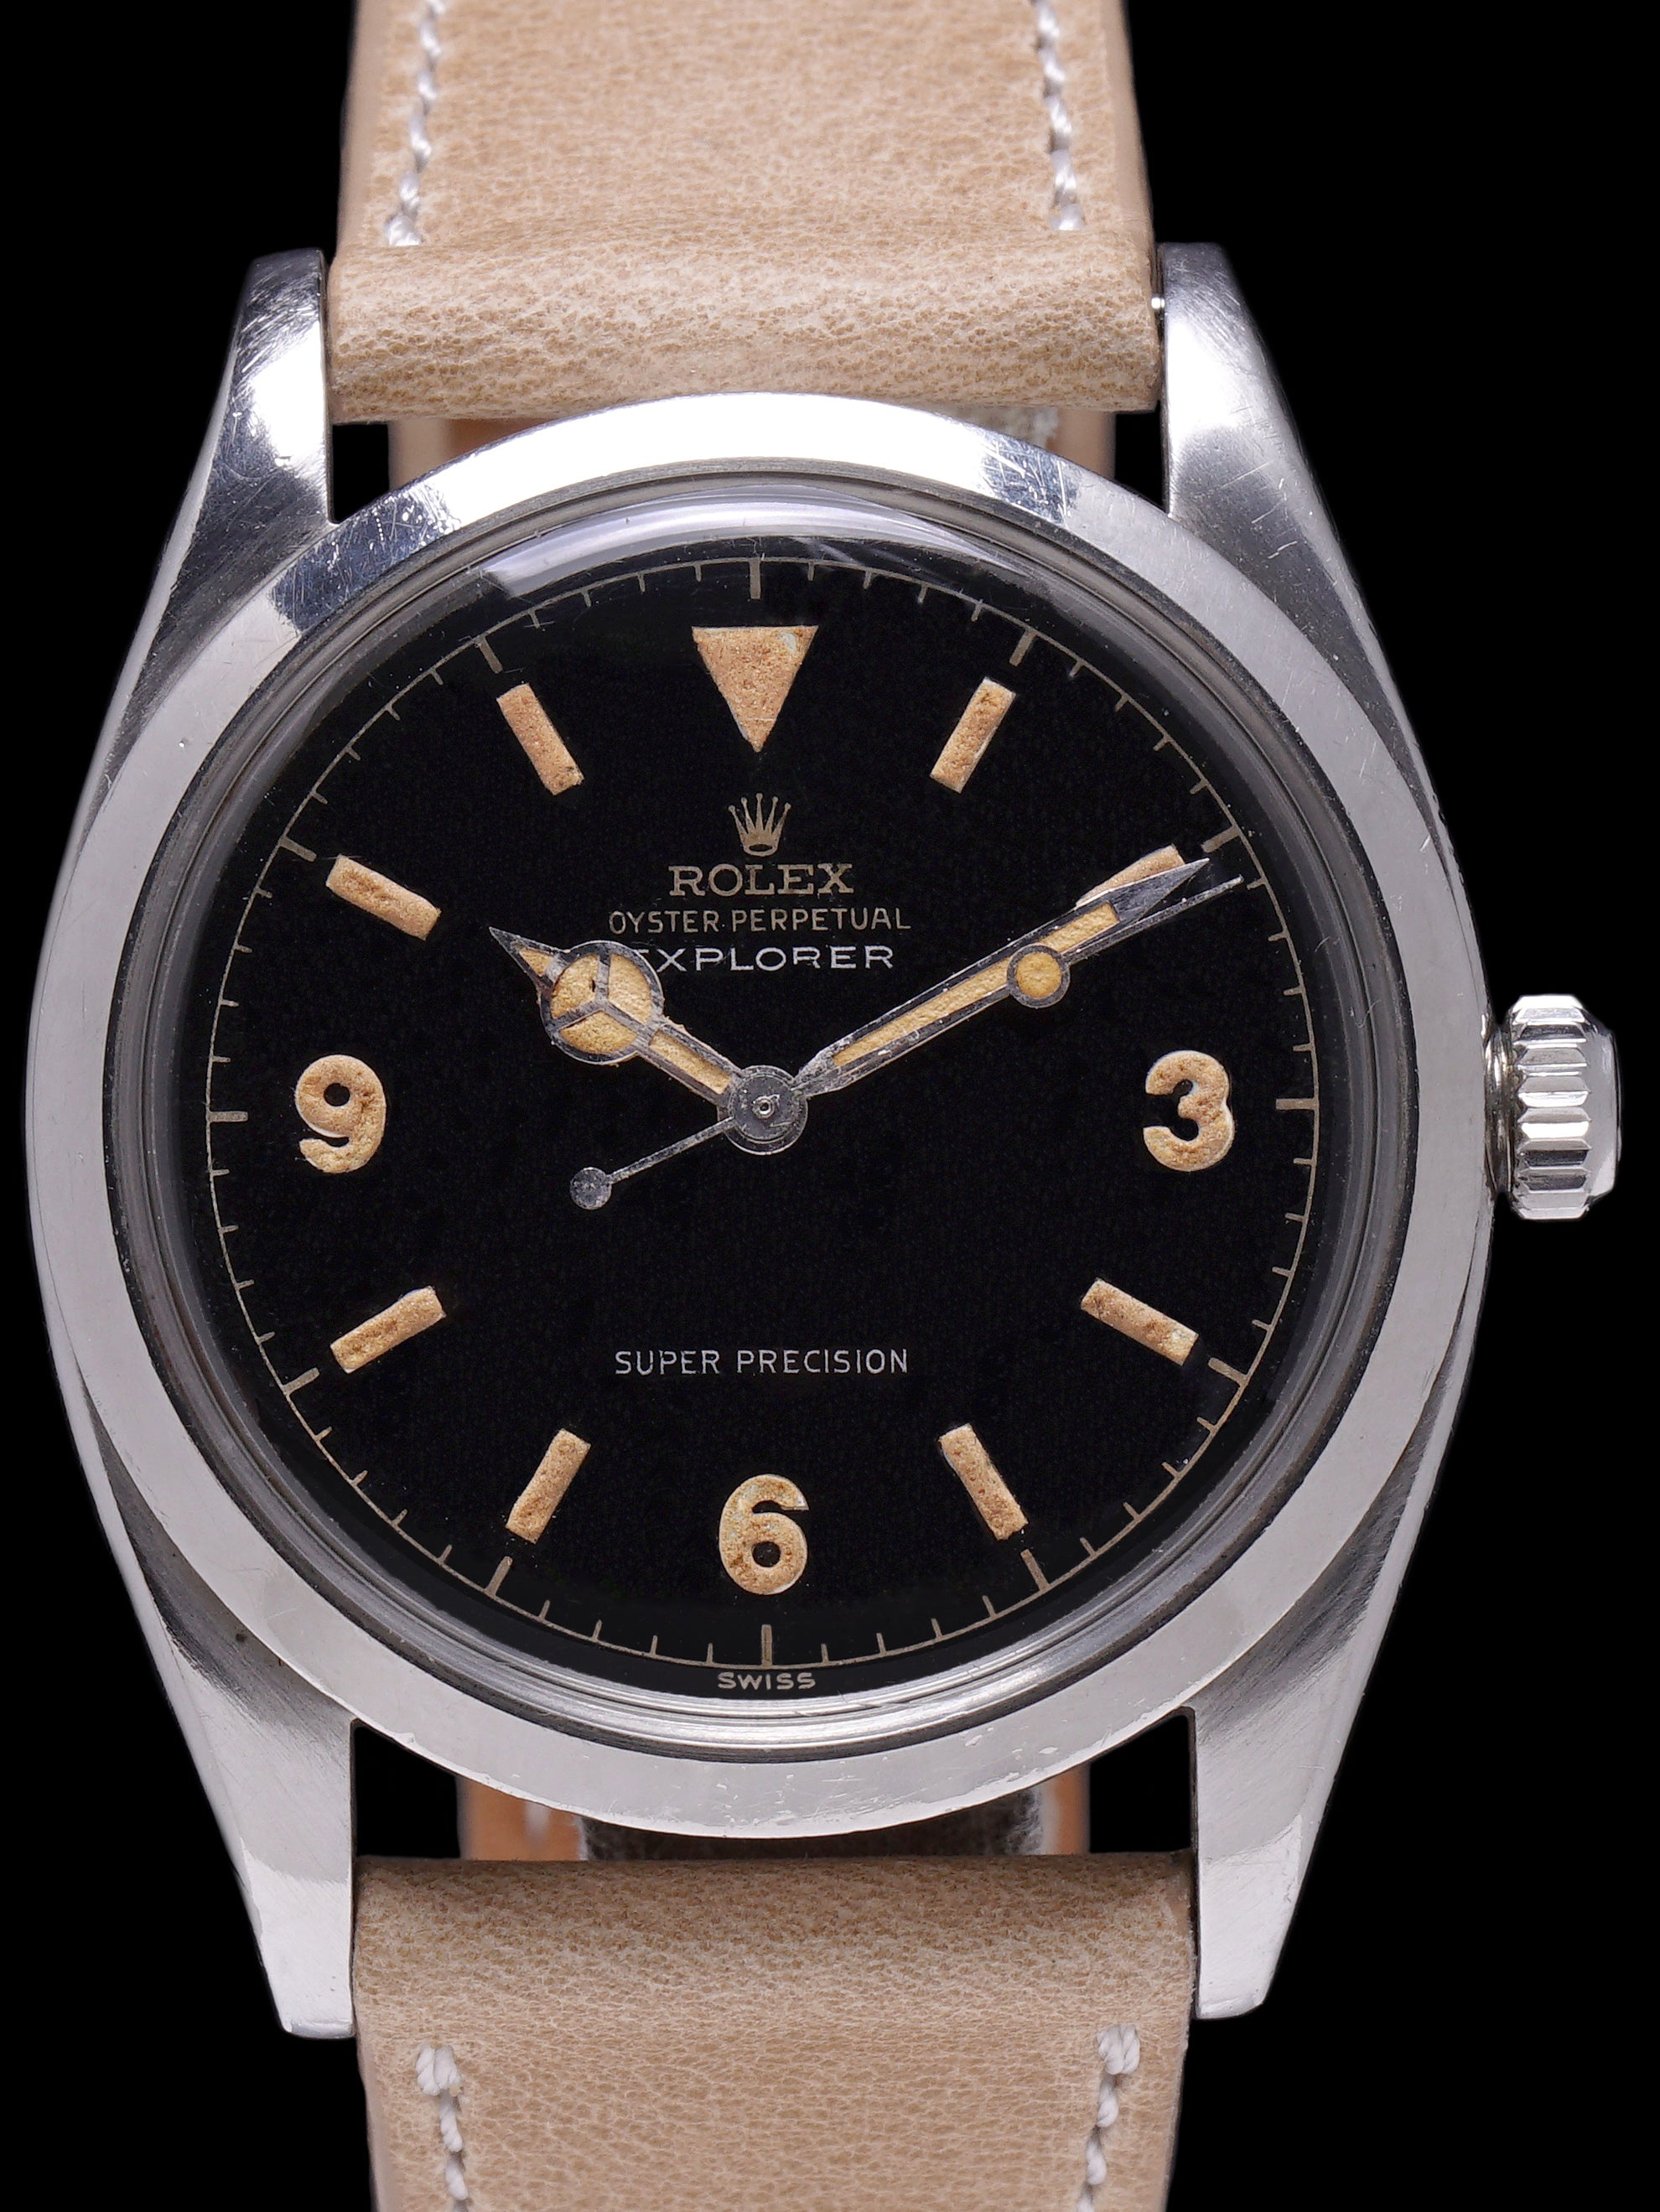 1958 Rolex Super Precision Explorer (Ref. 5504) Gilt Chapter Ring